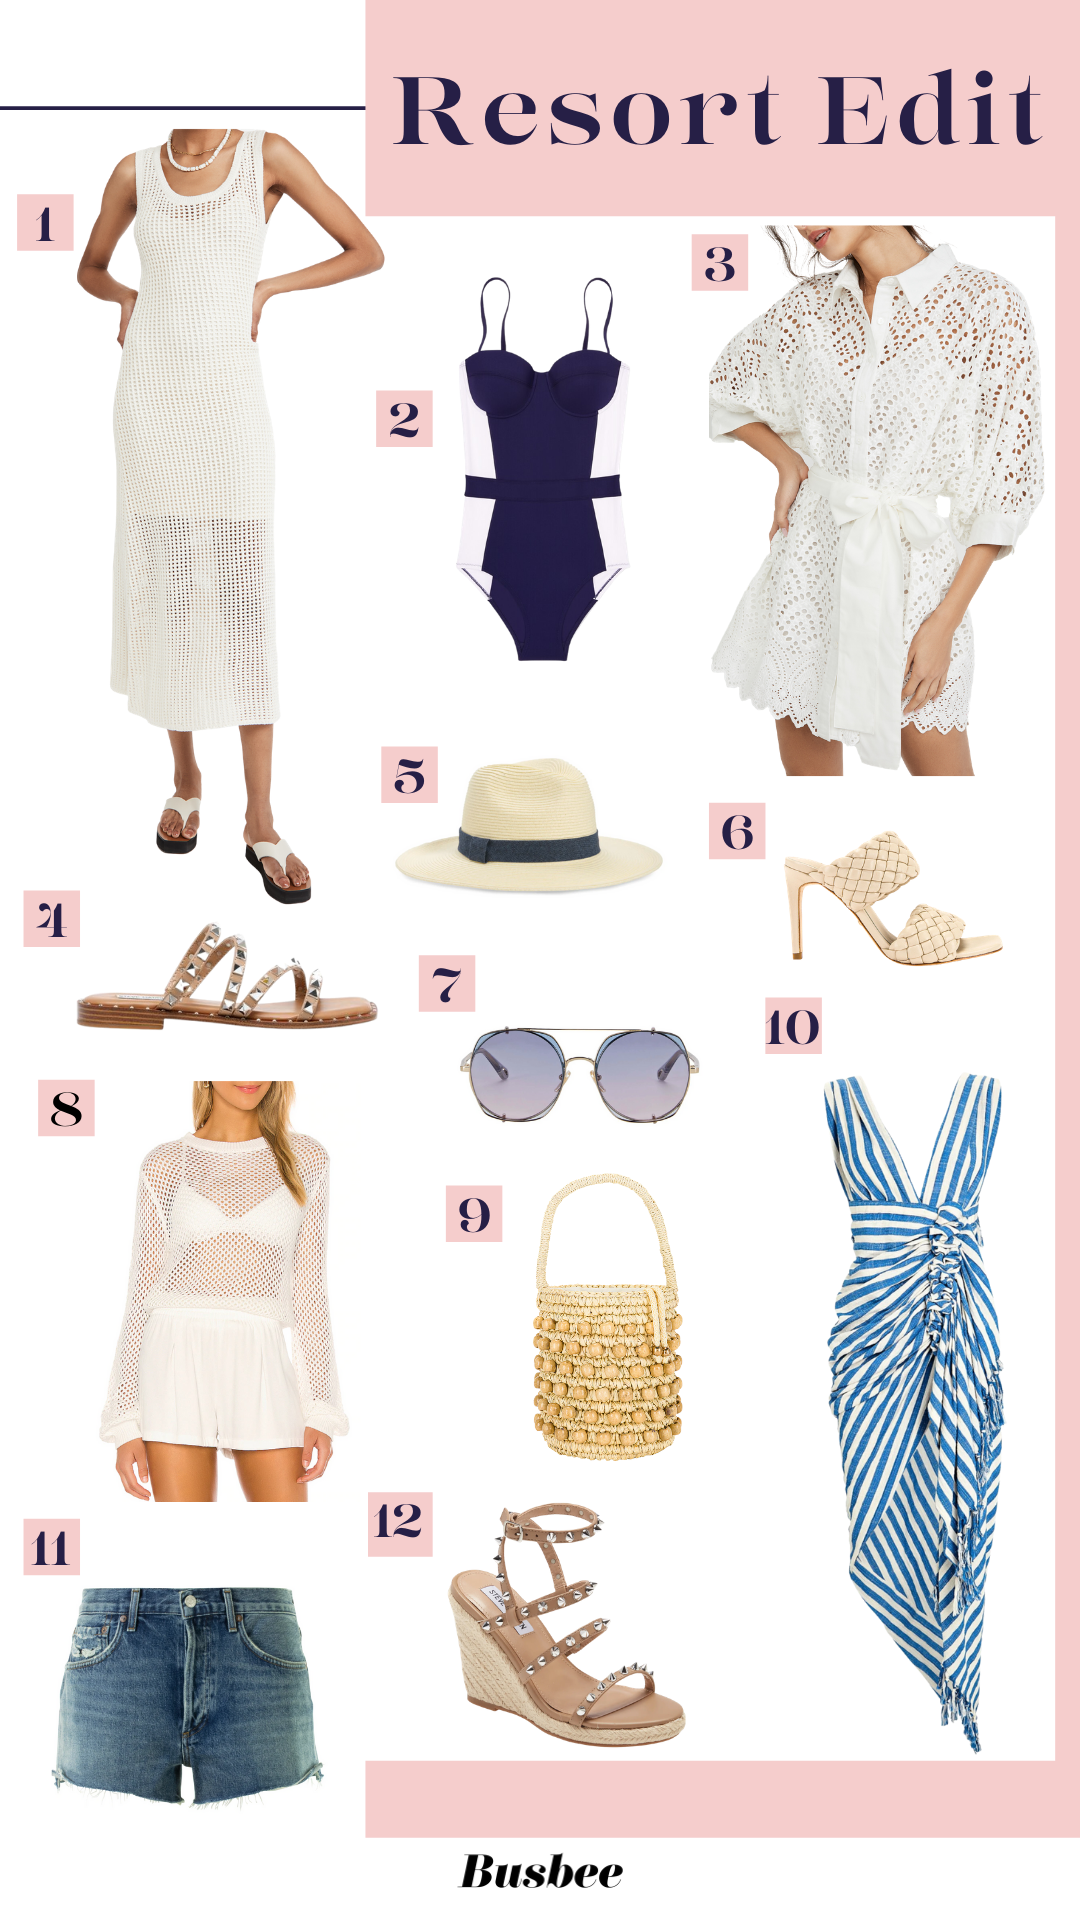 Beach Vacation Must Haves, Erin Busbee of Busbee sharing vacation must-haves like white dresses, sandals, swimsuits, denim shorts, and more!